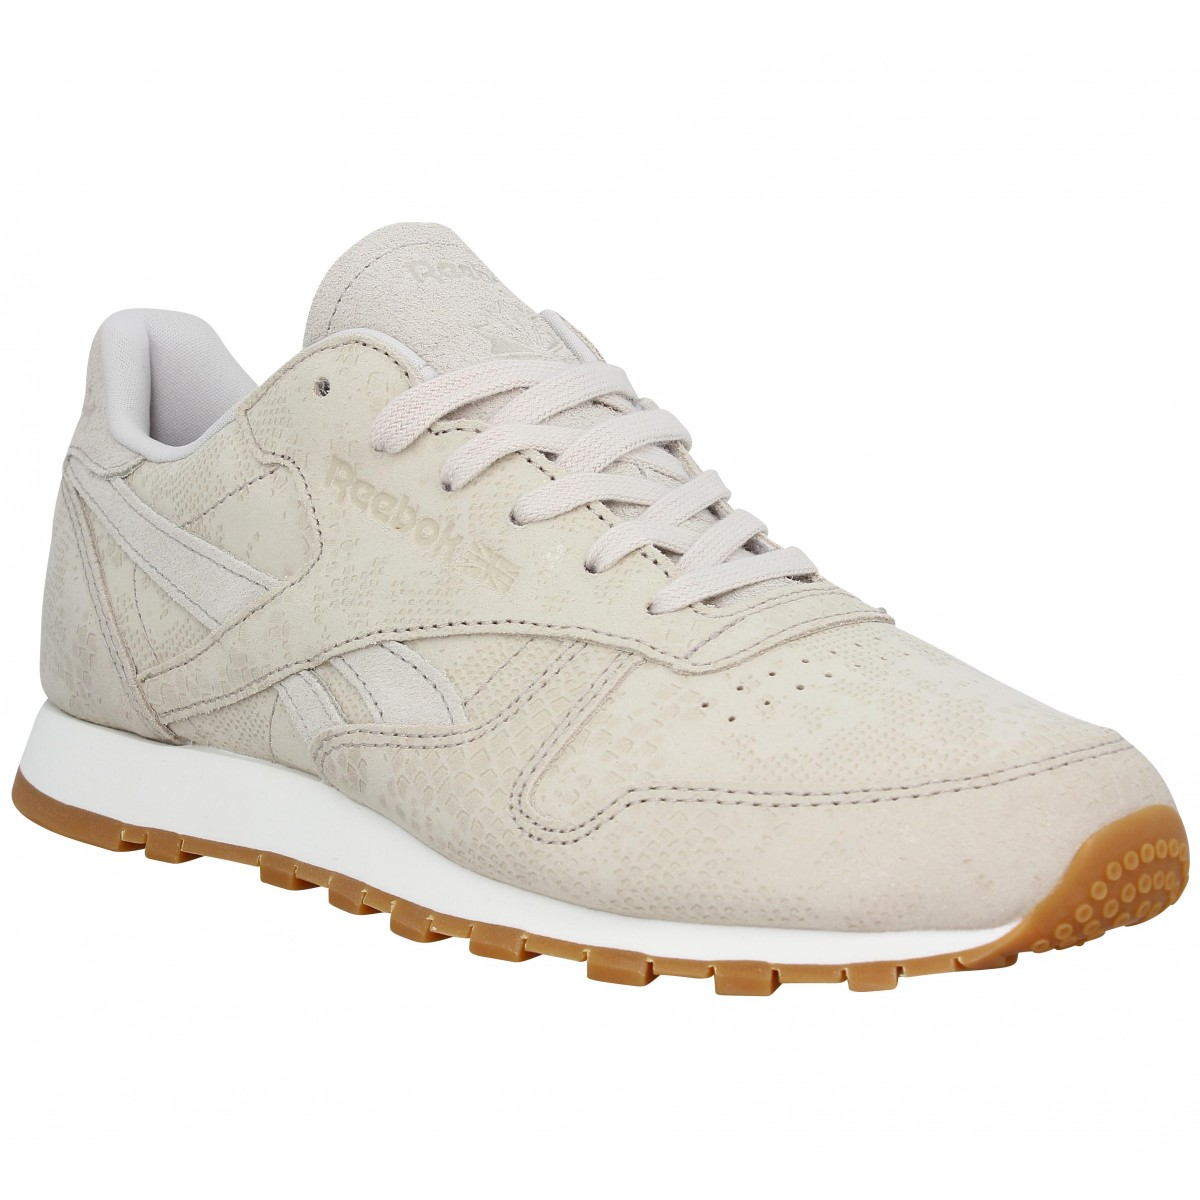 Baskets REEBOK Classic Leather Clean Exotics Femme Beige